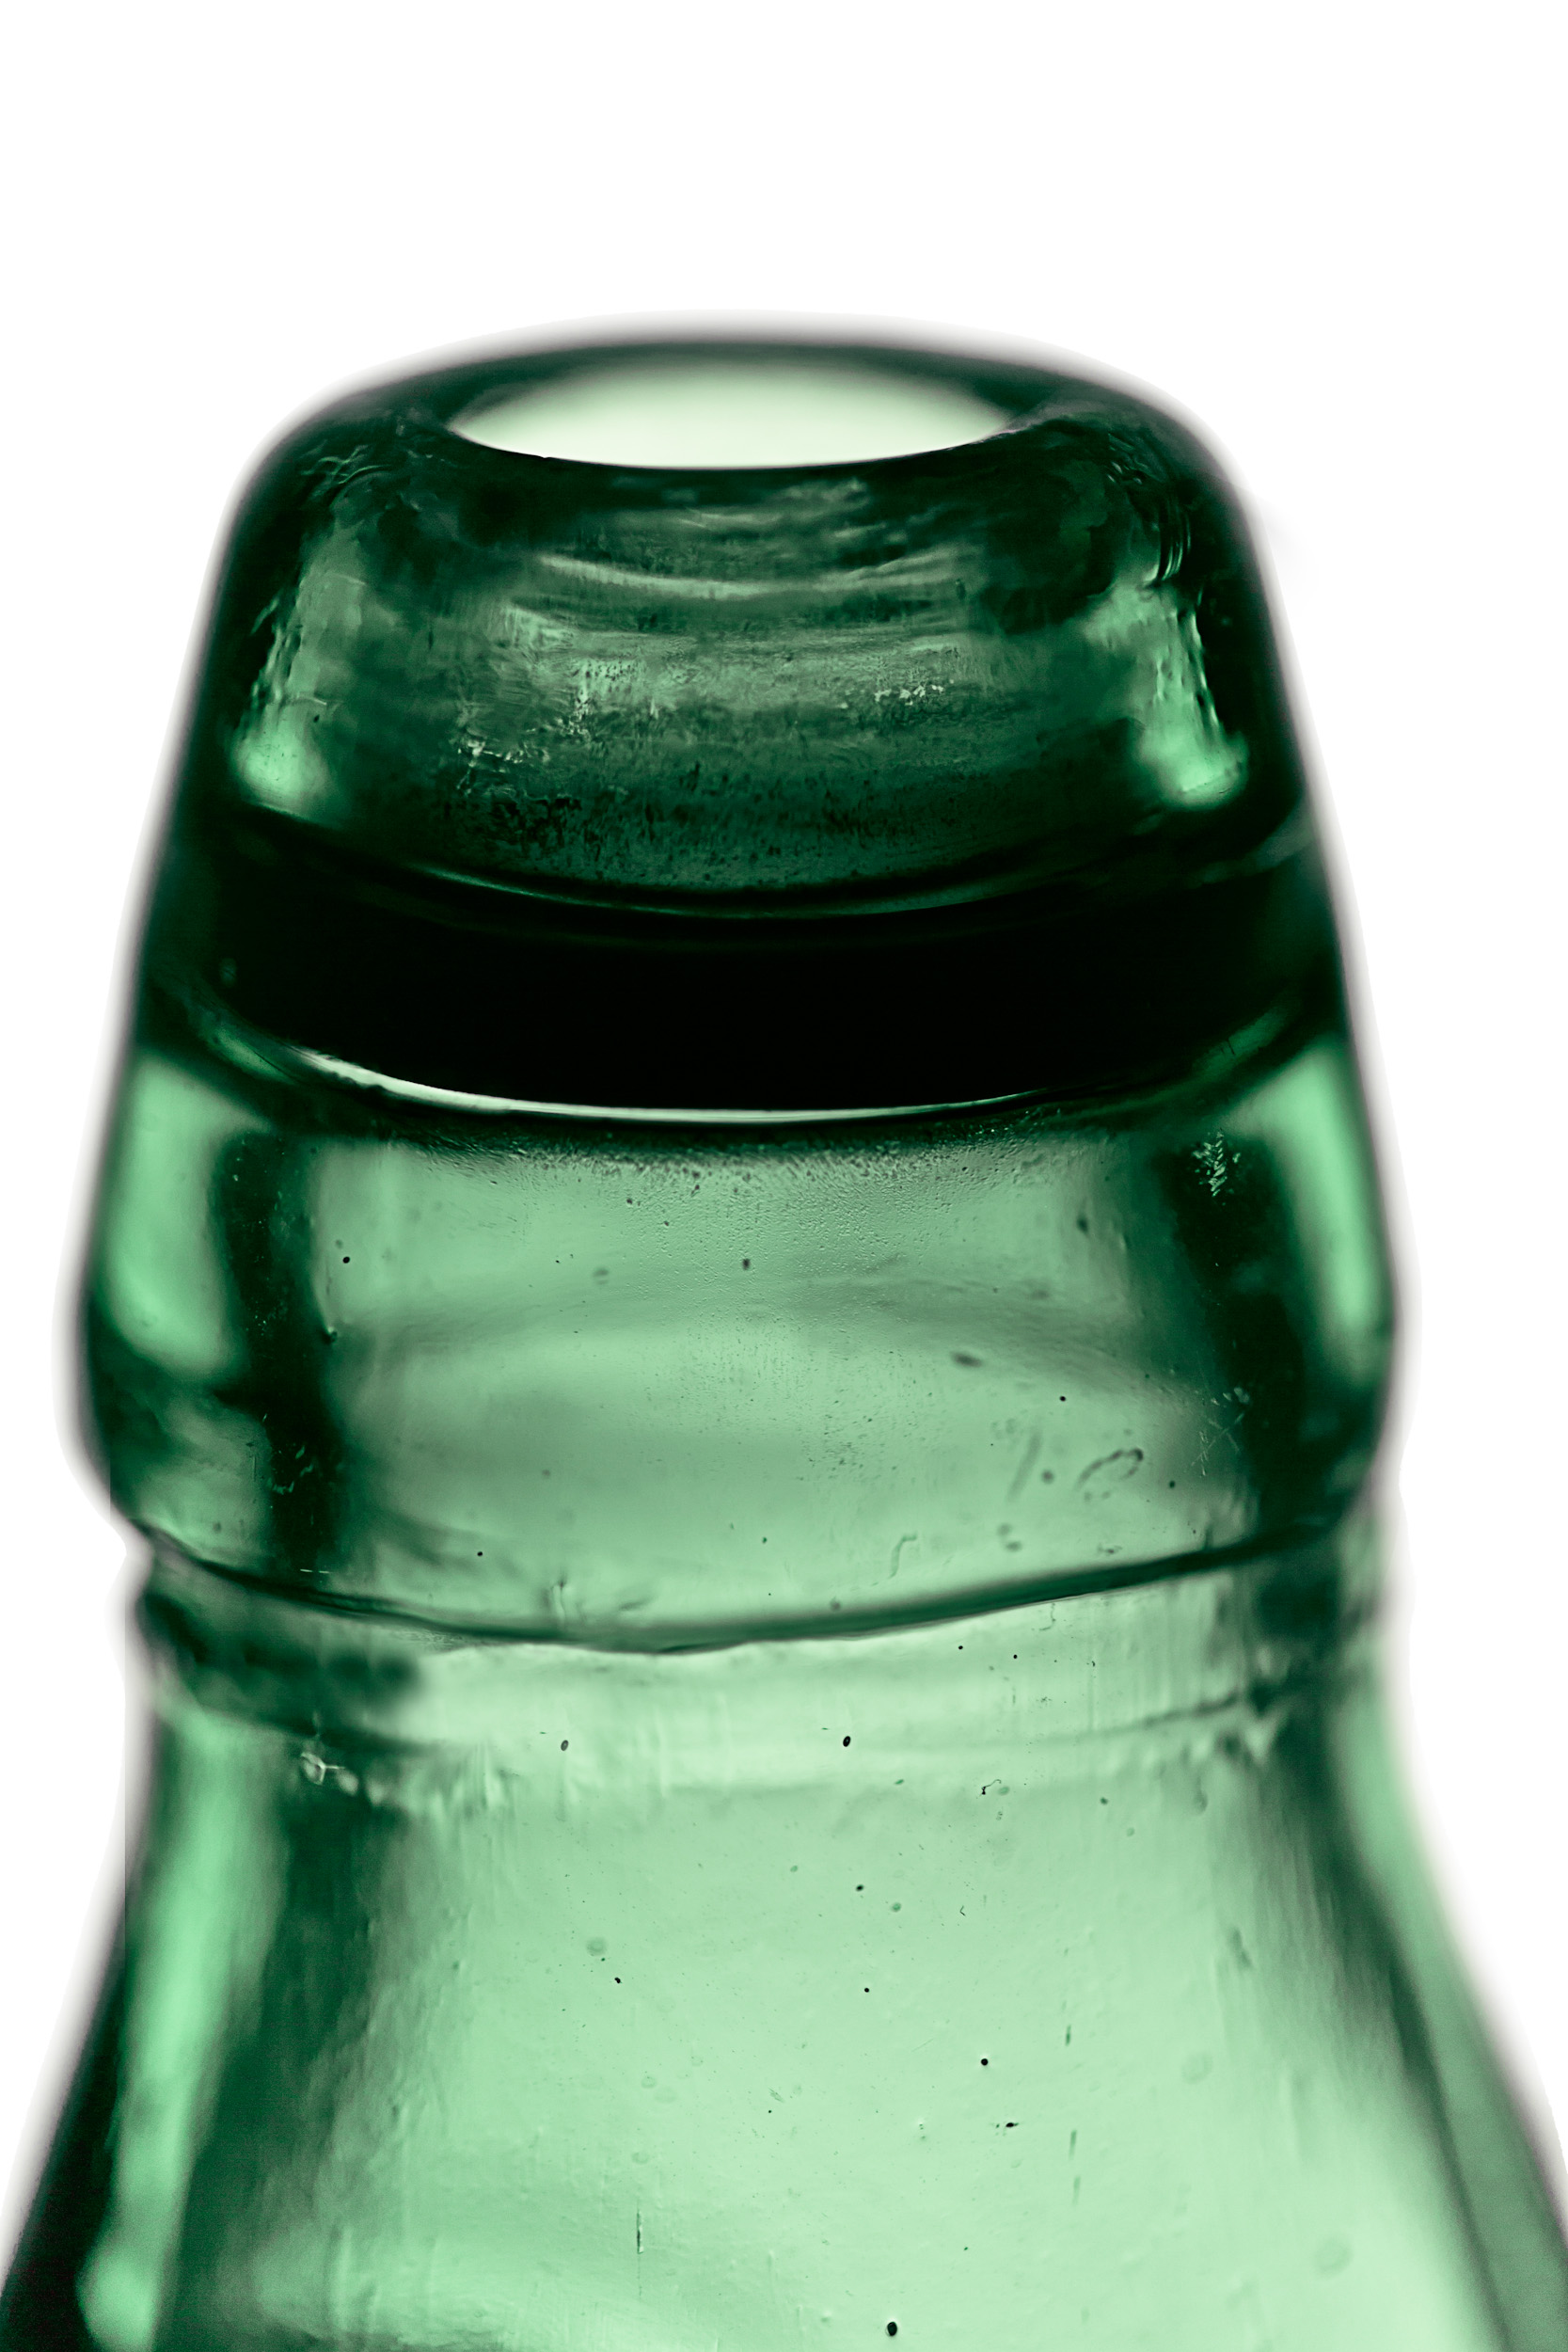 Sindhur_Photography_Perspectives_Product_Golisoda_Soda_32.JPG